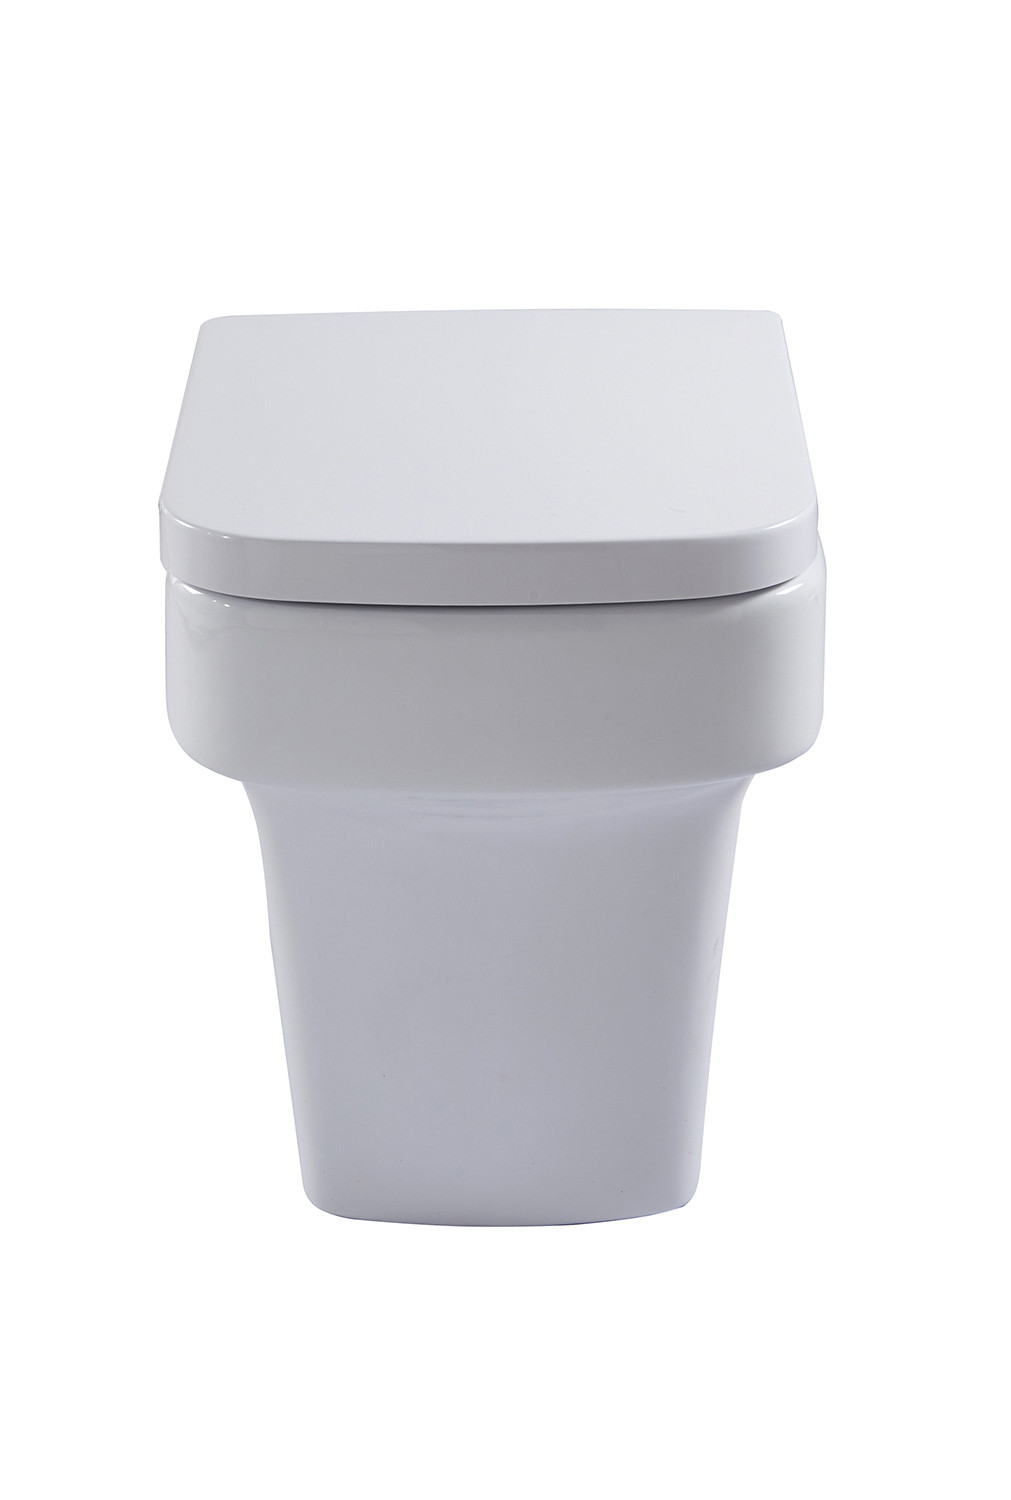 Medici Back-to-Wall Toilet with Soft-Close Seat